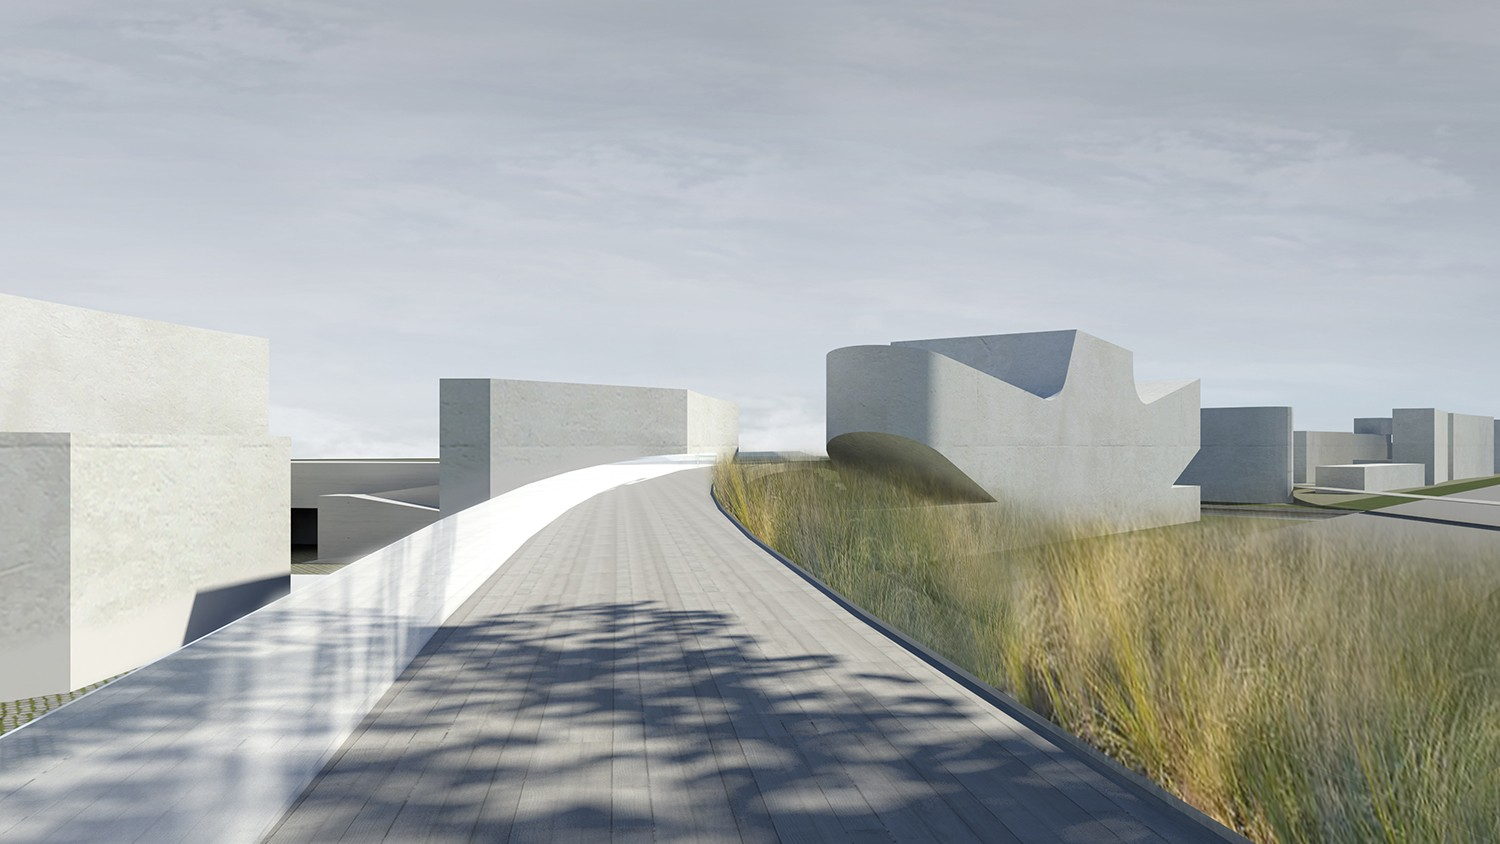 https://stevenholl.sfo2.digitaloceanspaces.com/uploads/projects/project-images/StevenHollArchitects_HybridC_Camera02BridgeandTheater_WH.jpg